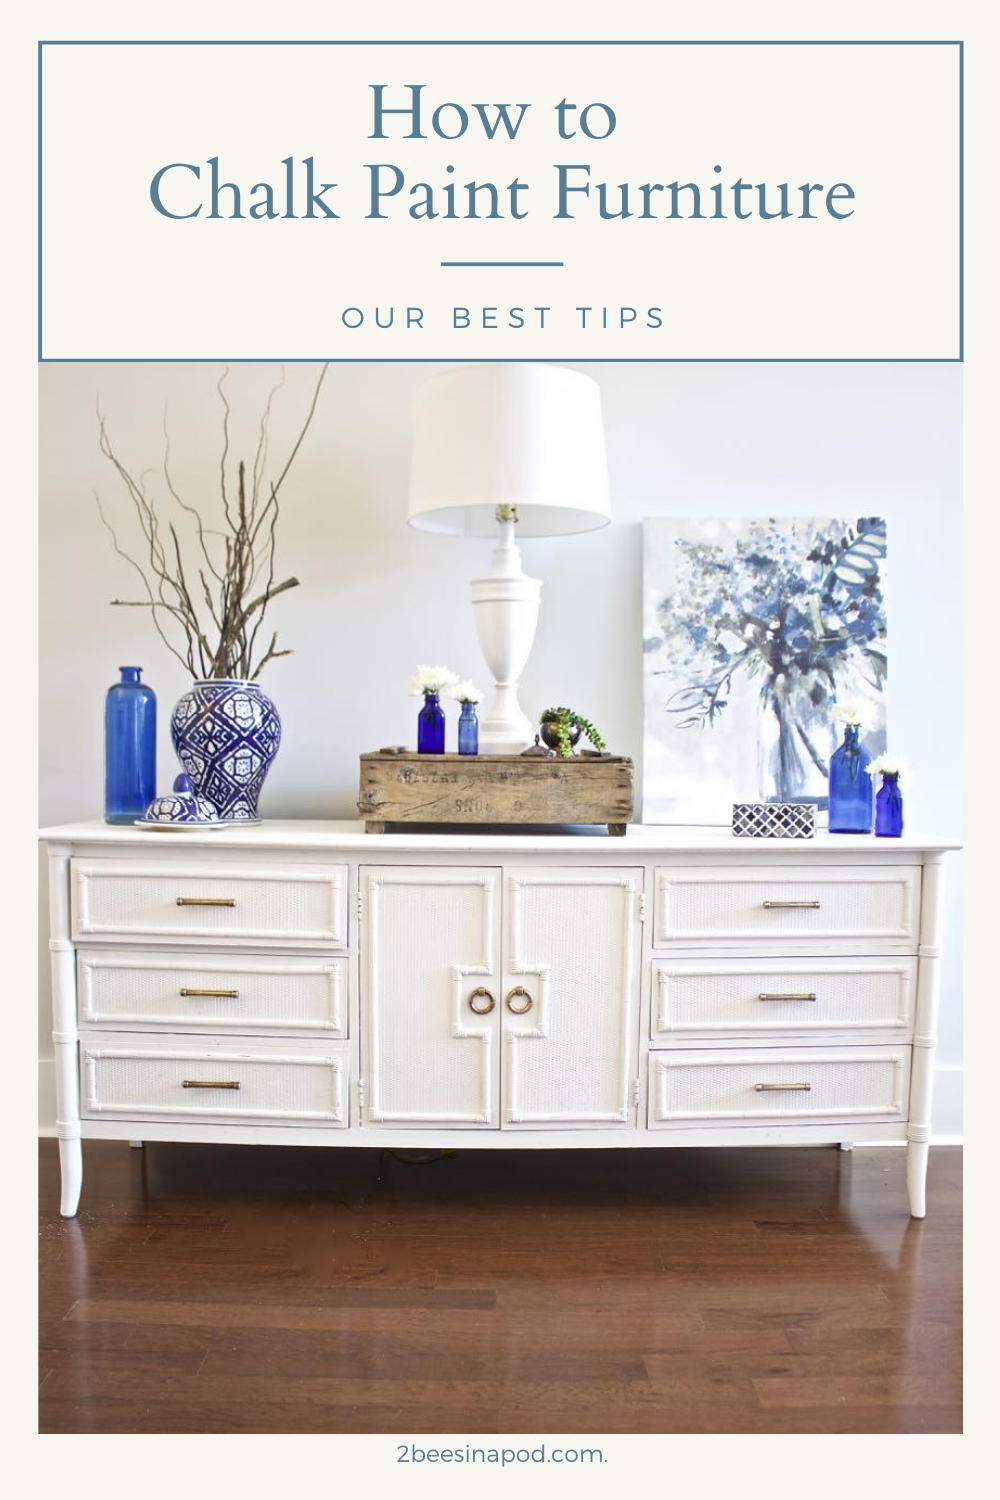 Tips for chalk painting furniture